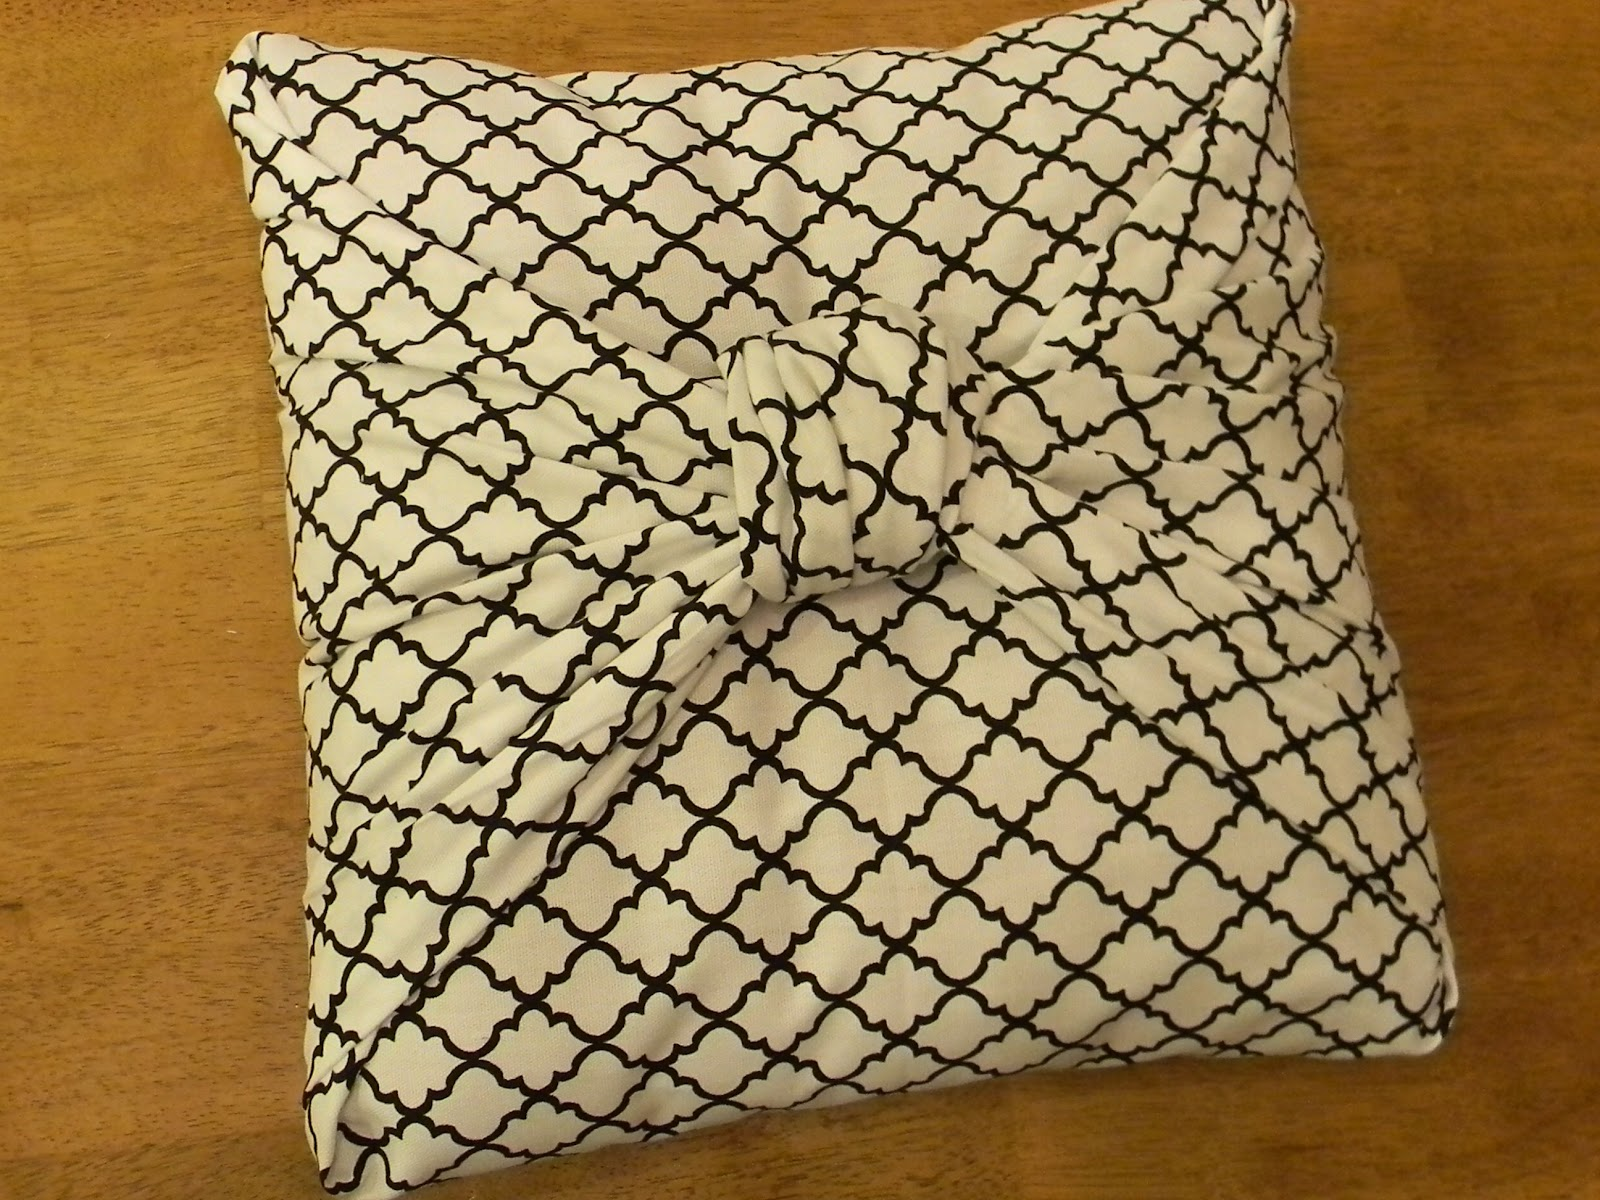 Diy Bean Bag Chair Cover Rush Seat Chairs Repair Here Is Another Cute Bow Pillow Tutorial From Organize And Decorate Everything. However She ...